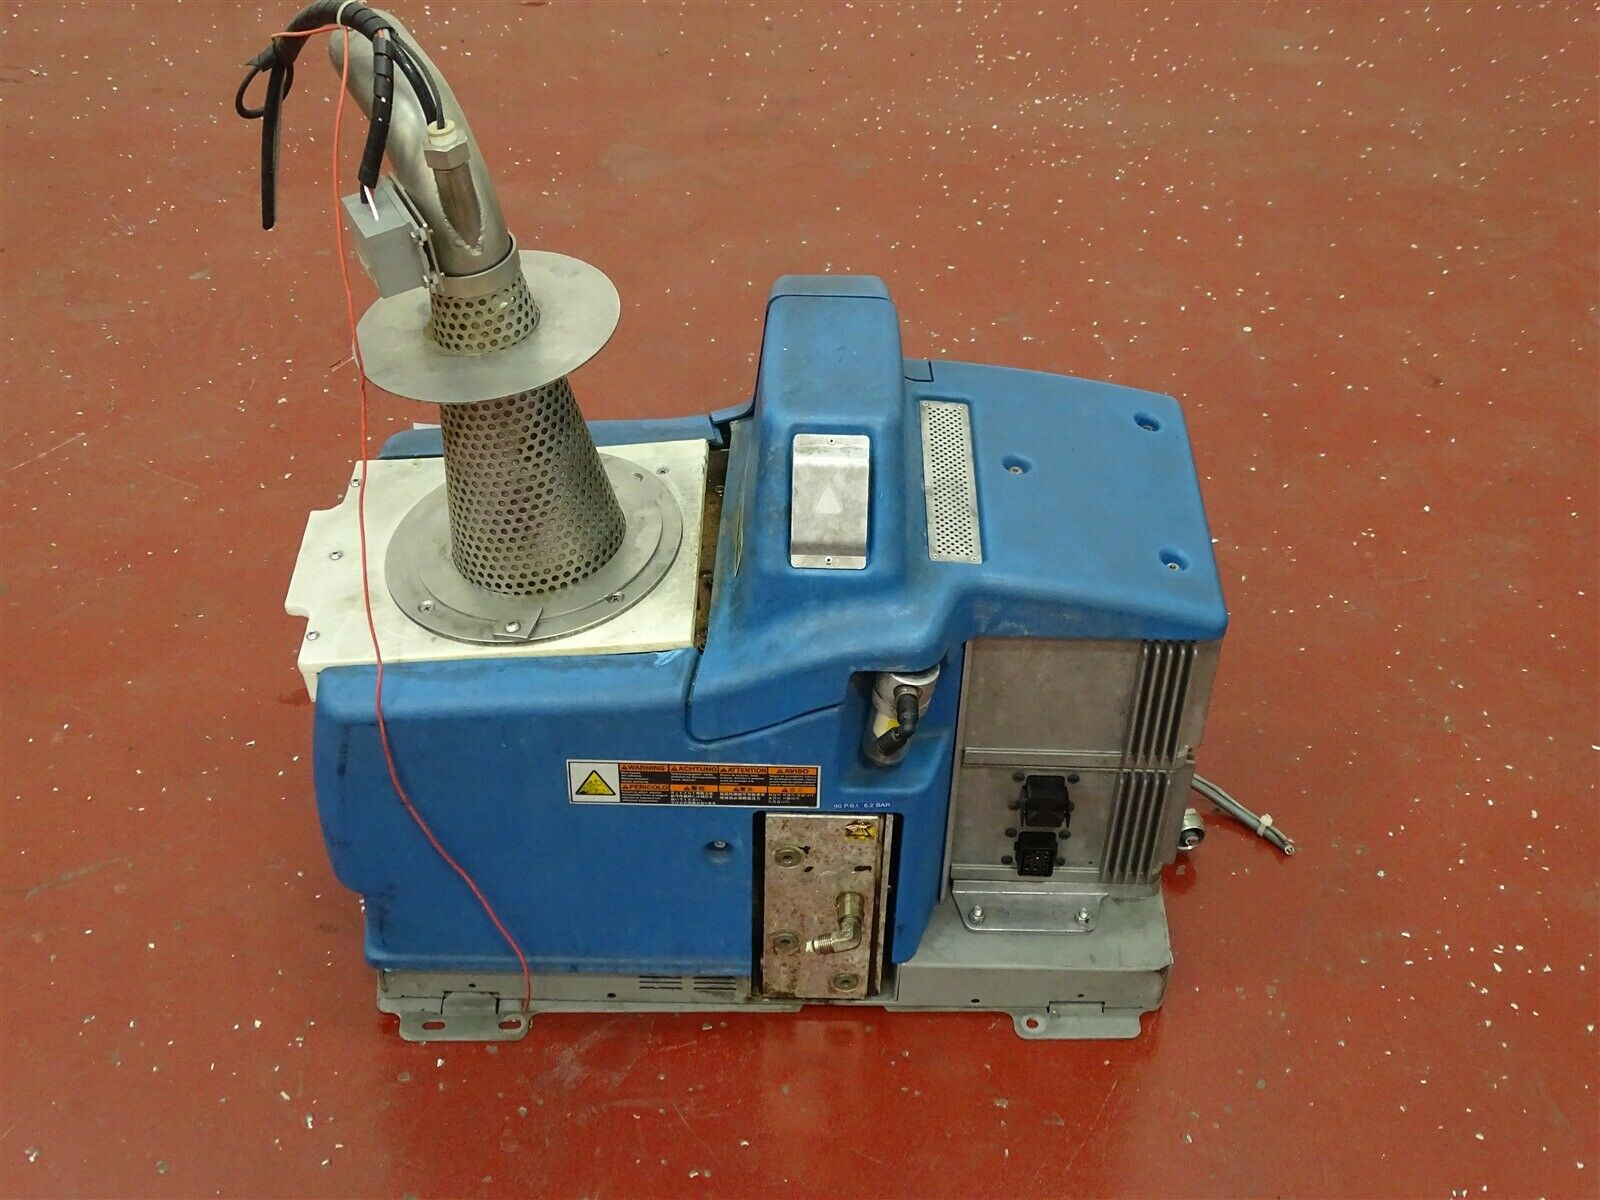 Nordson Problue 7 1022232A Hot Melt Applicator Machine w/ Rechner R1C/L25010